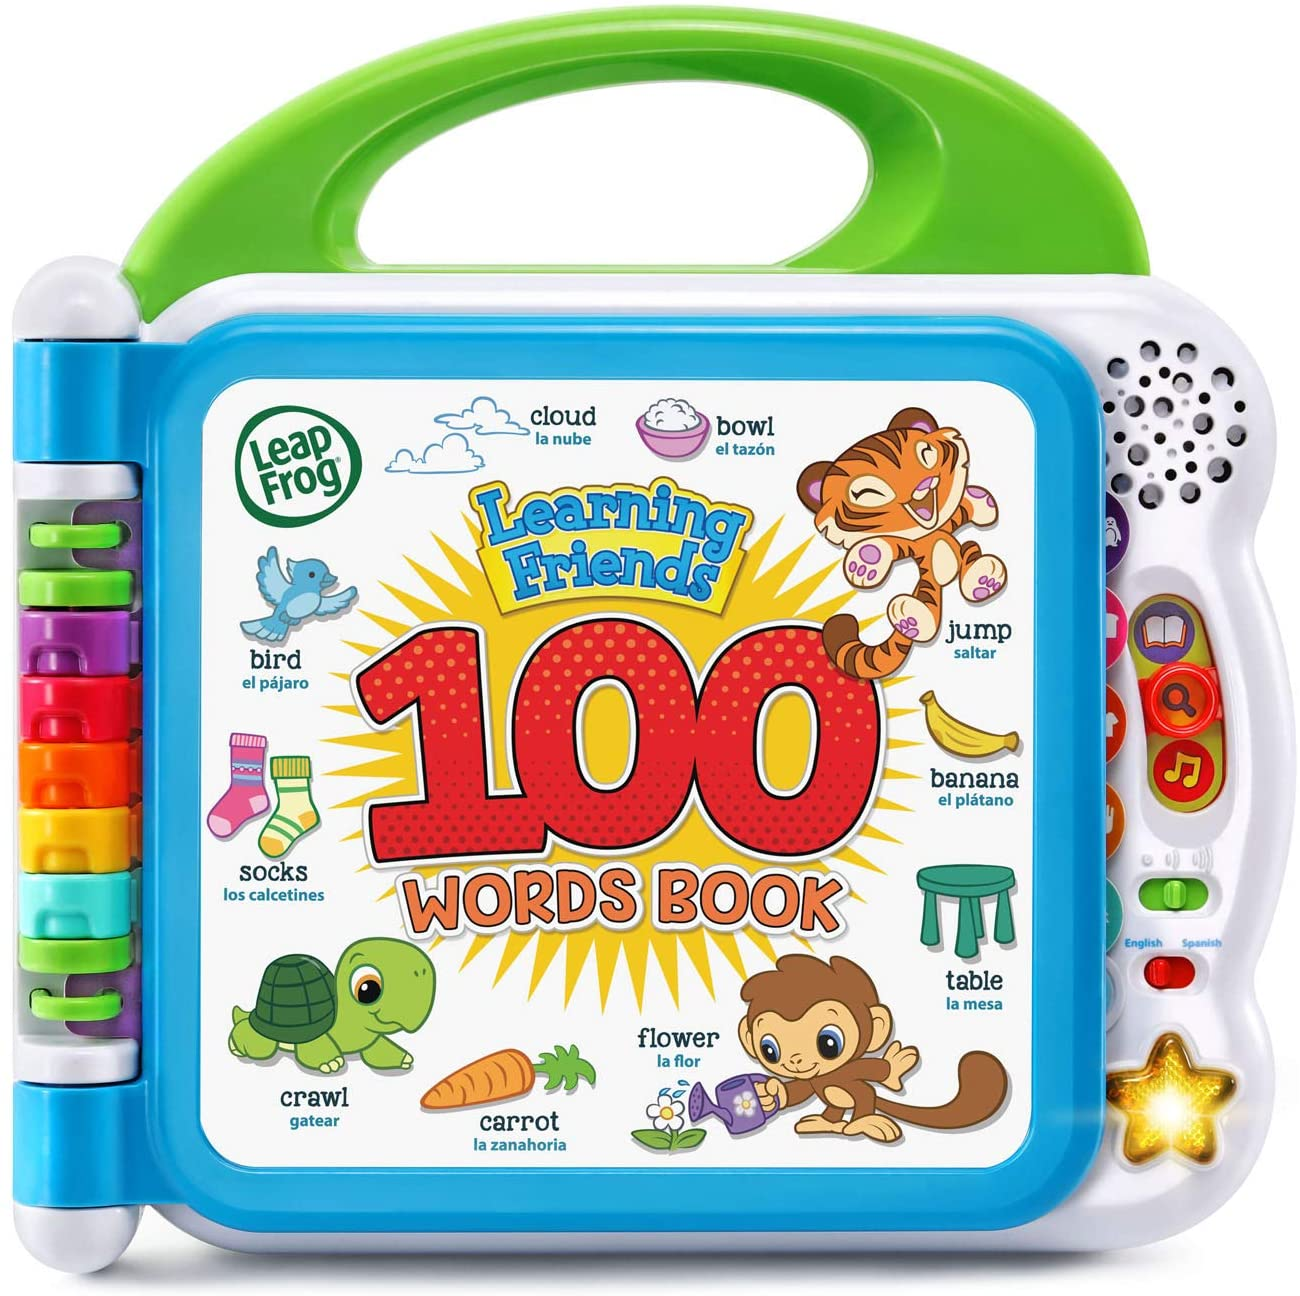 best-baby-boy-gifts-for-babies-ages-0-2-leapfrog-word-book